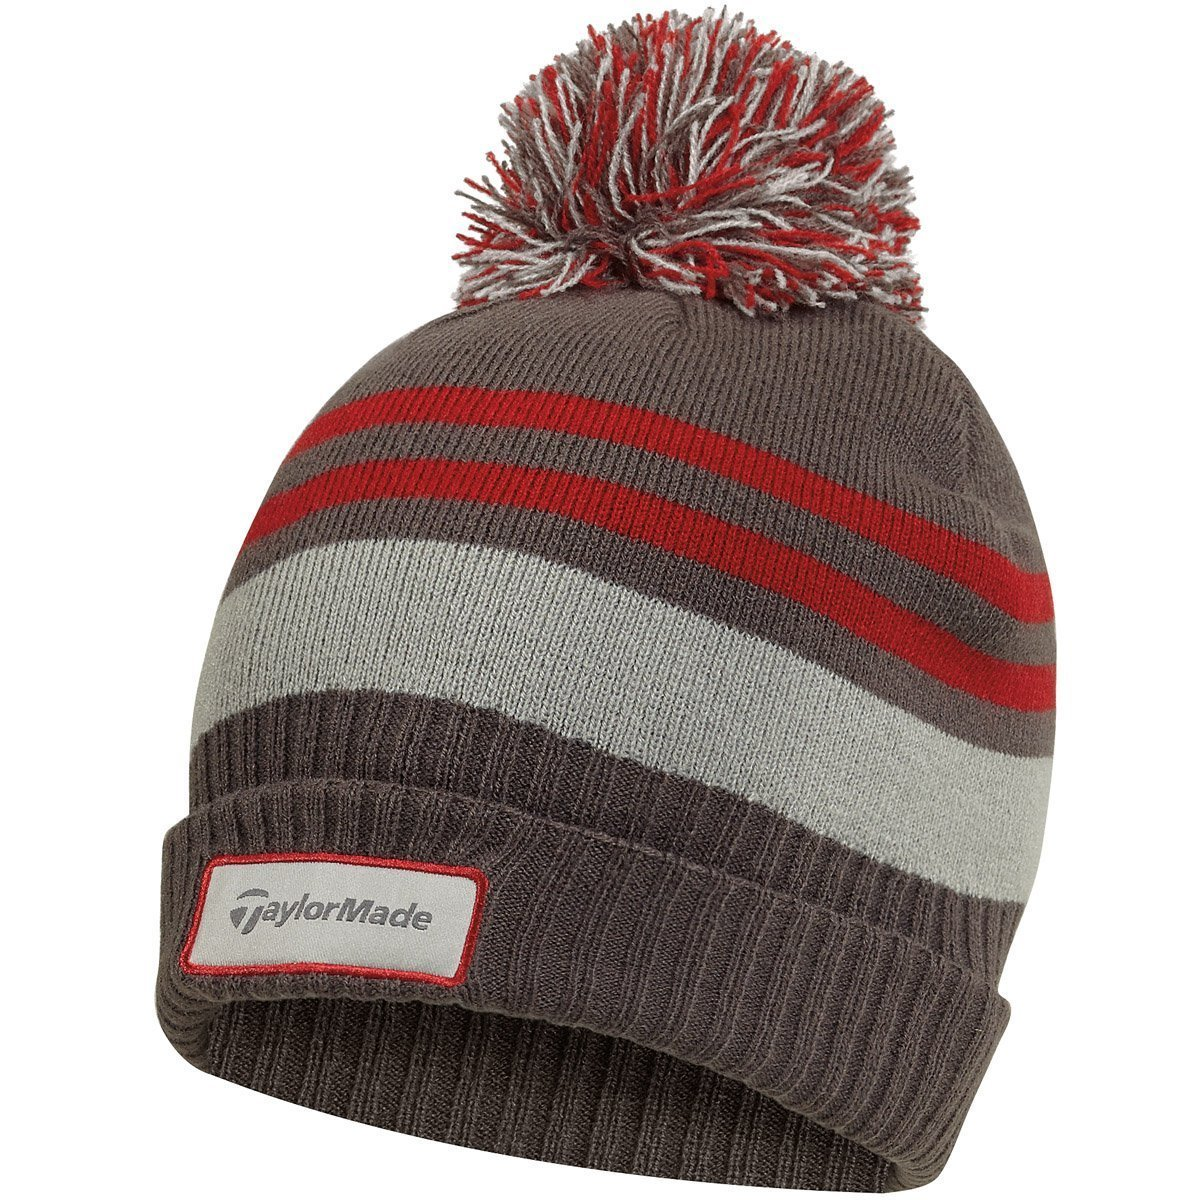 4d25dc09b0a9a Taylormade Mens Double Knit Thermal Striped Golf Beanie Bobble Hats ...